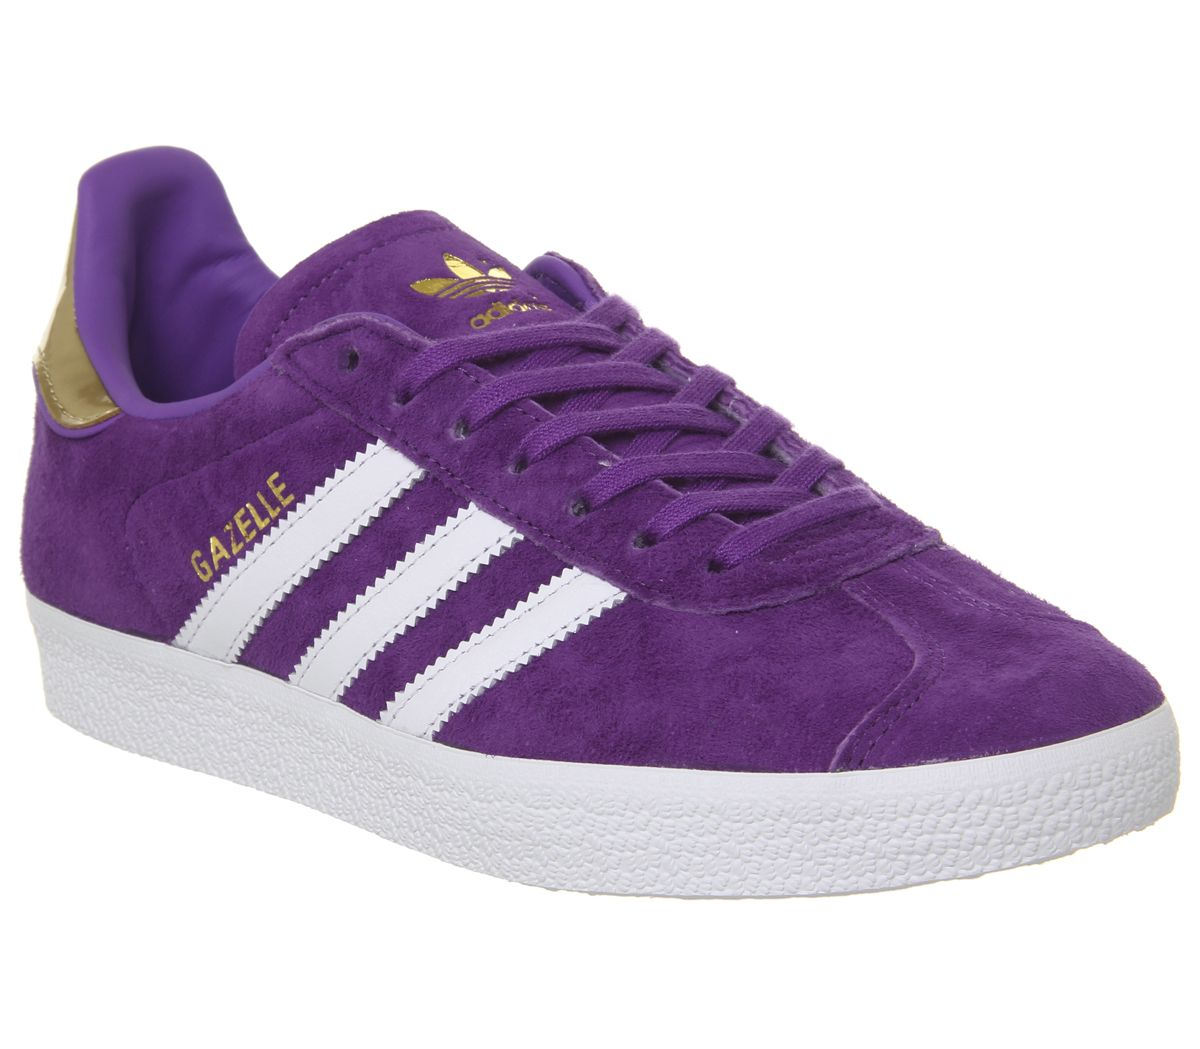 promo code 074ba 516c7 adidas Gazelle Trainers White Purple Gold Metallic Elizabeth Tfl ...